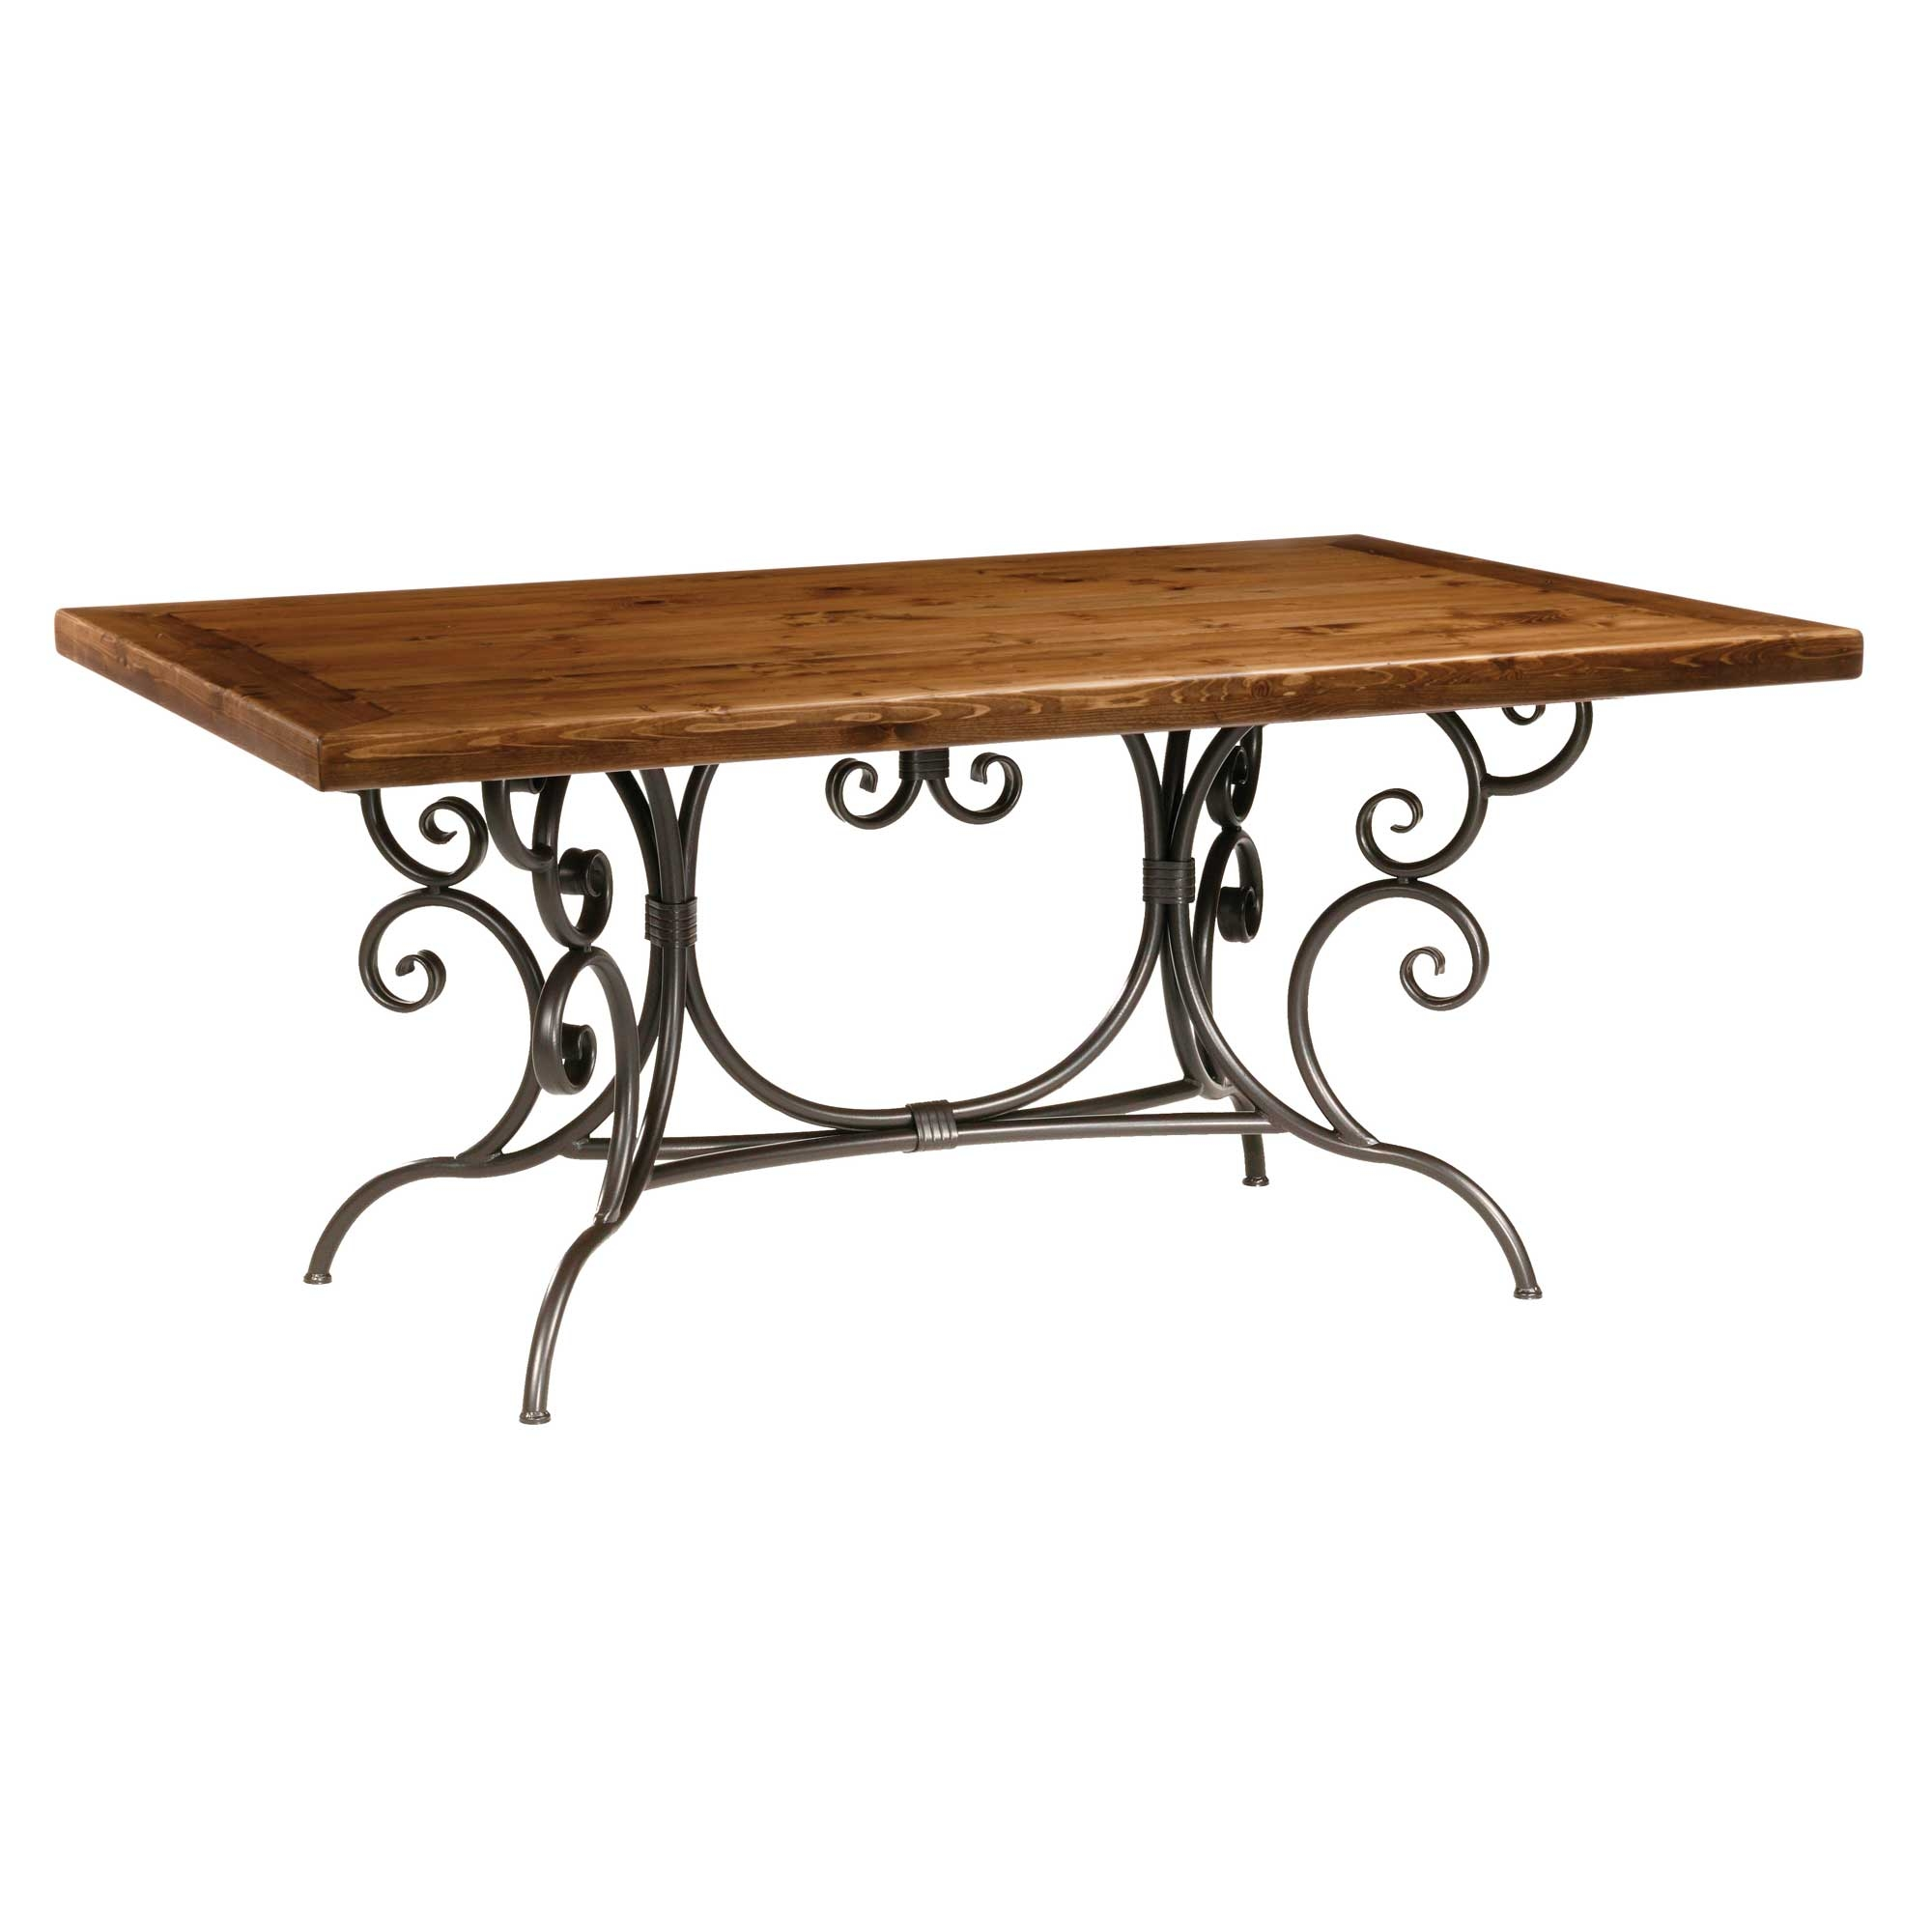 Dining Table Wood Dining Table Wrought Iron Base : waterbury dining table 901124 2 from diningtabletoday.blogspot.com size 2000 x 2000 jpeg 349kB